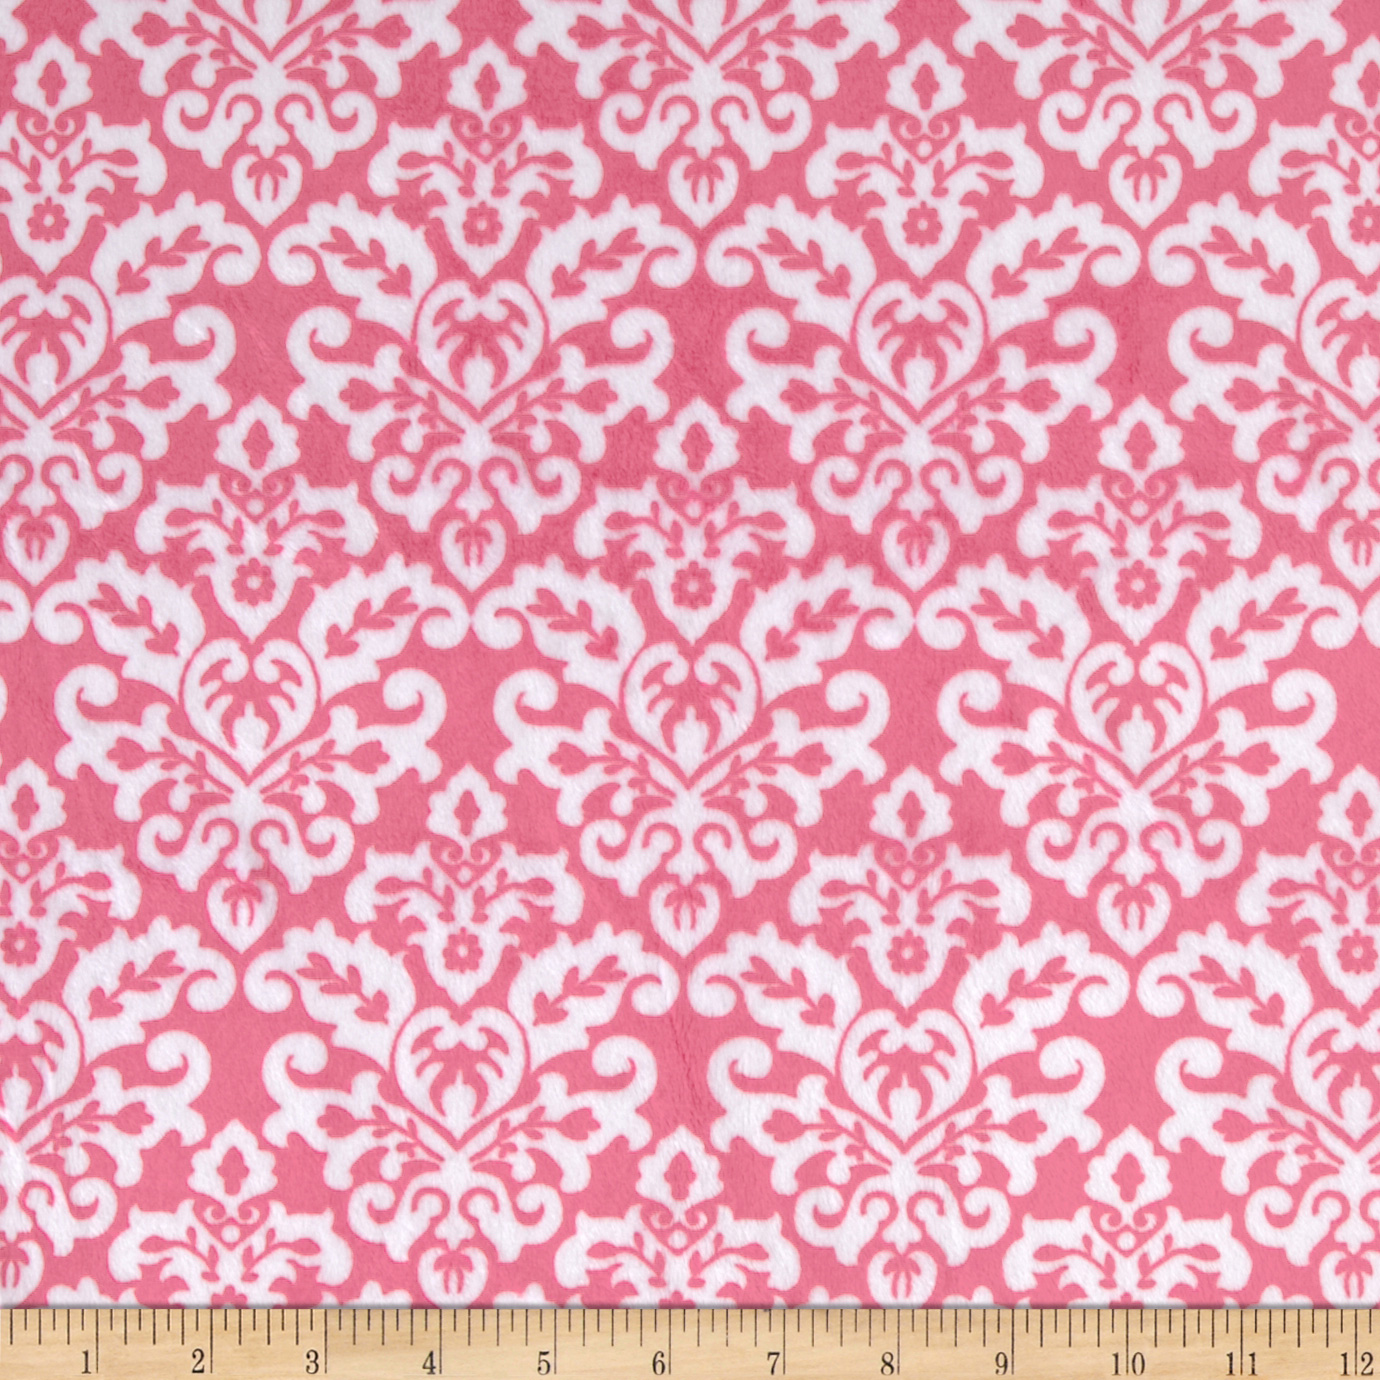 Minky Cuddle Classic Damask Fuchsia/Snow Fabric